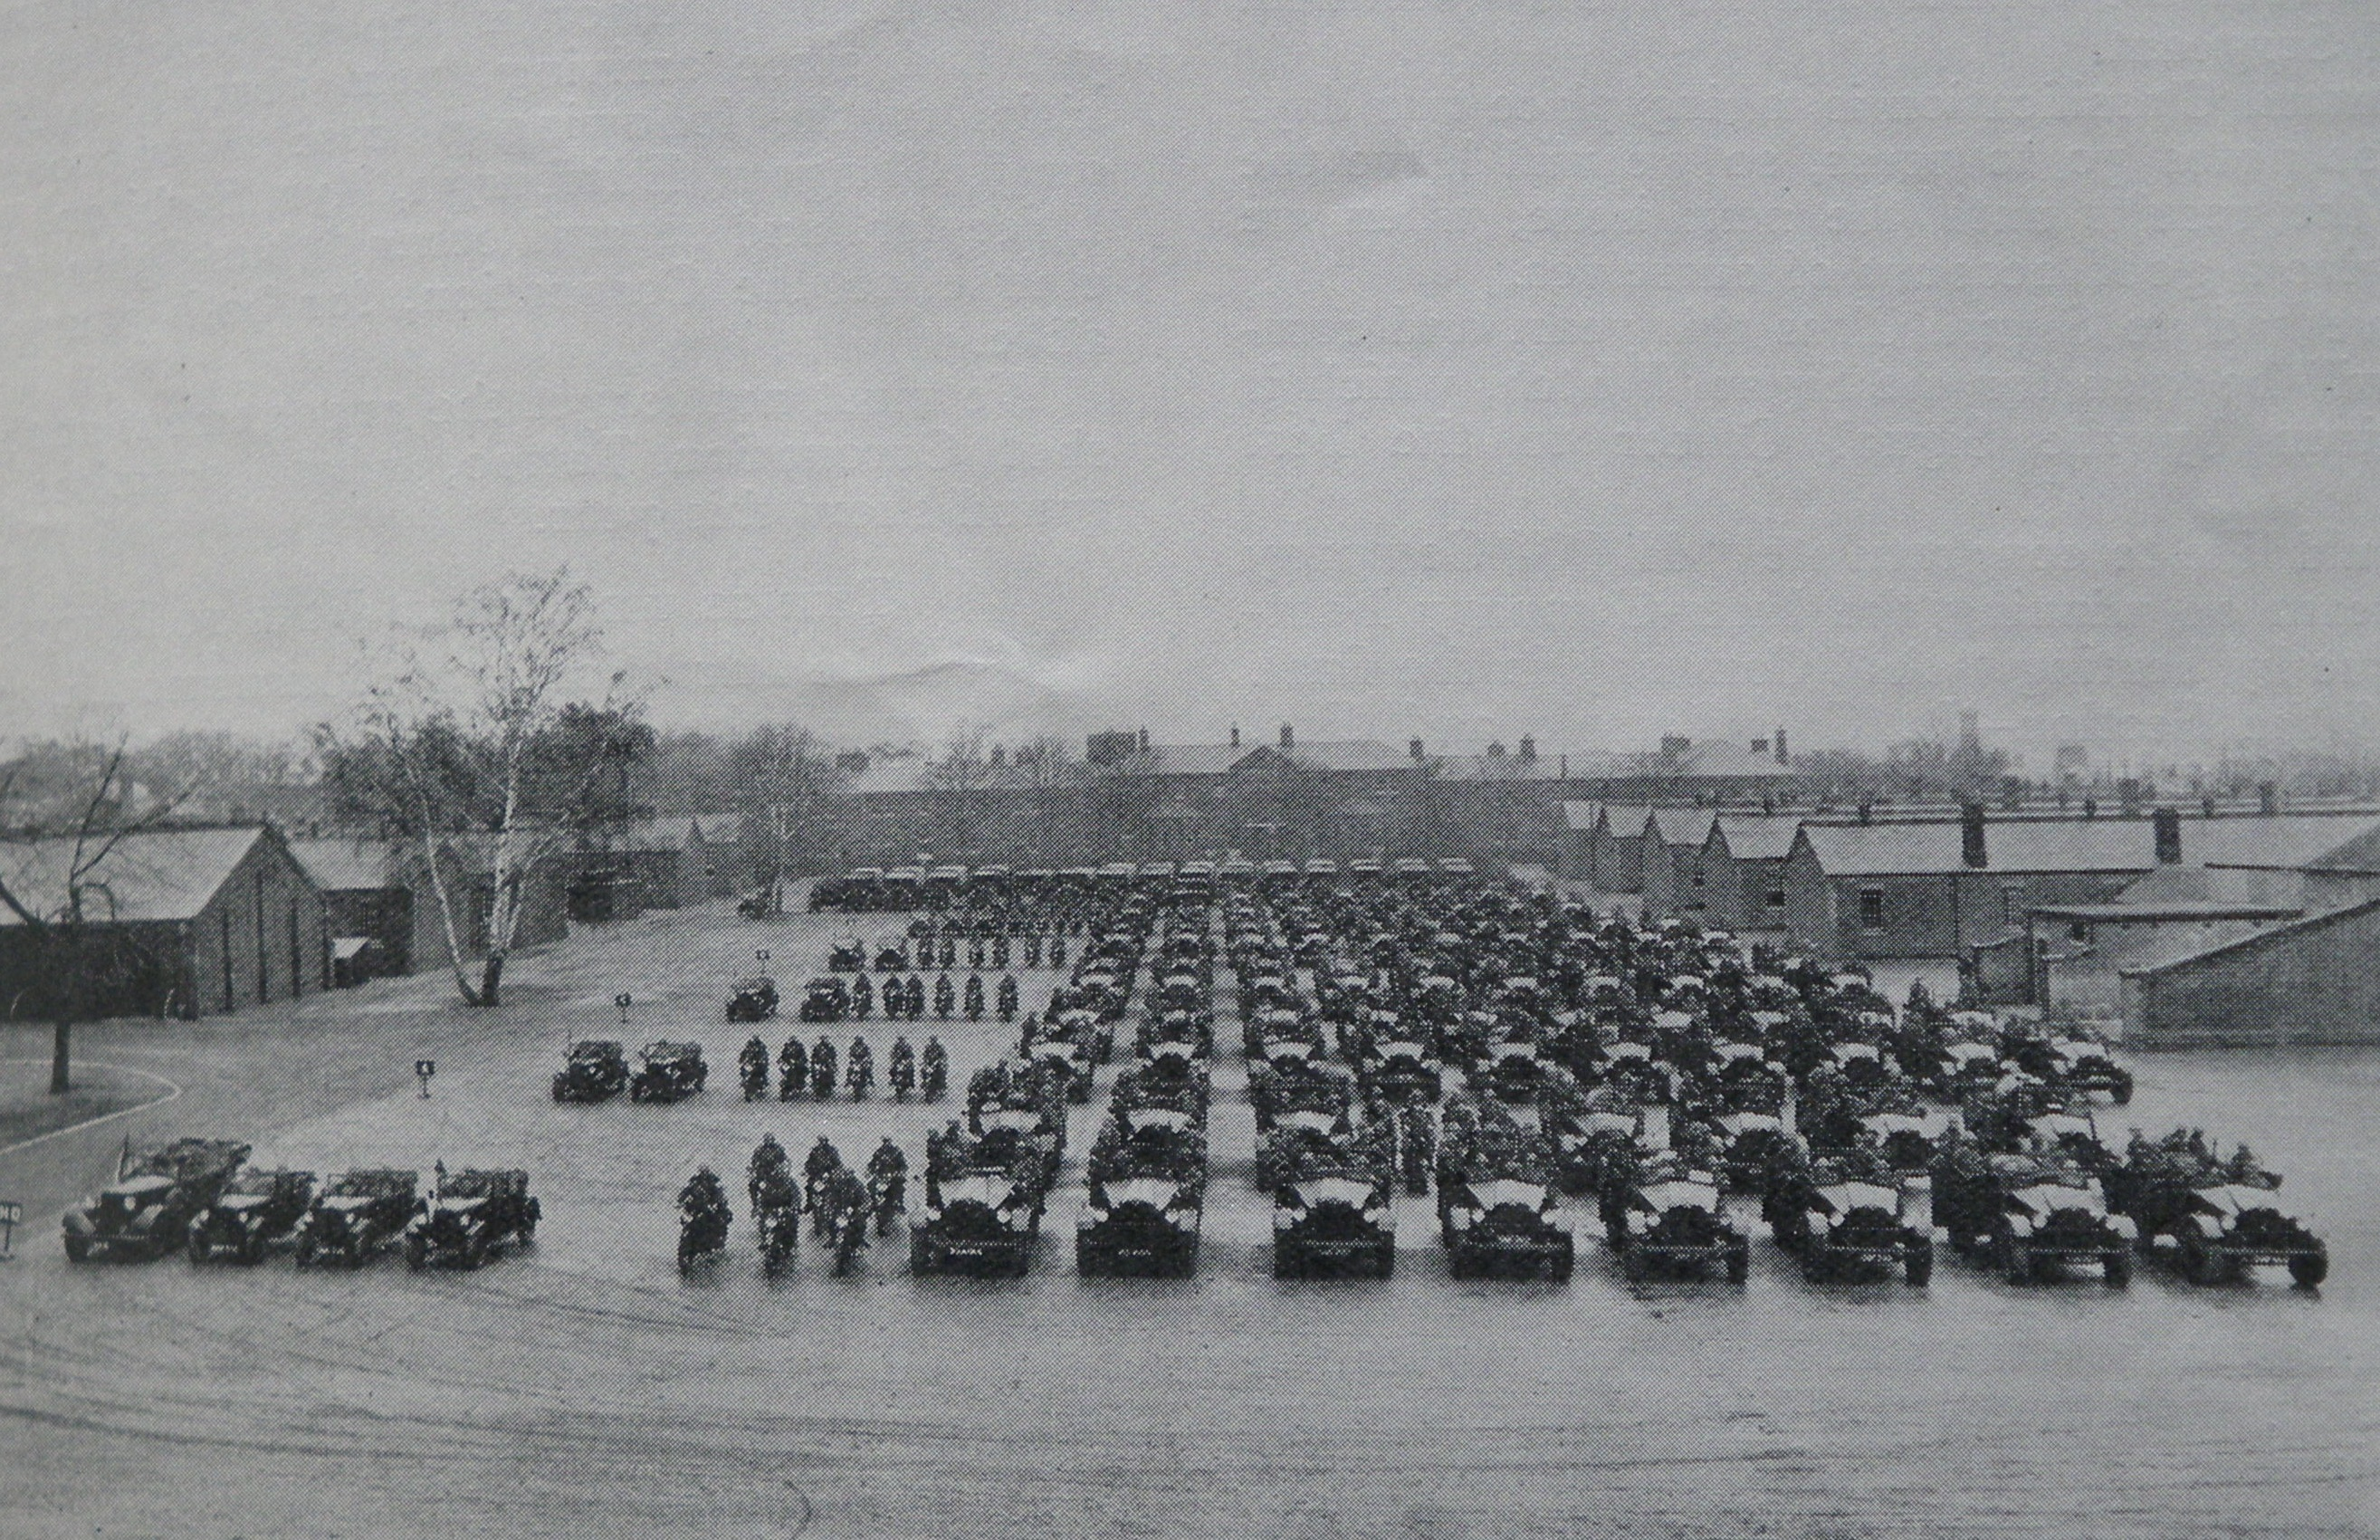 Battalion transport 1937